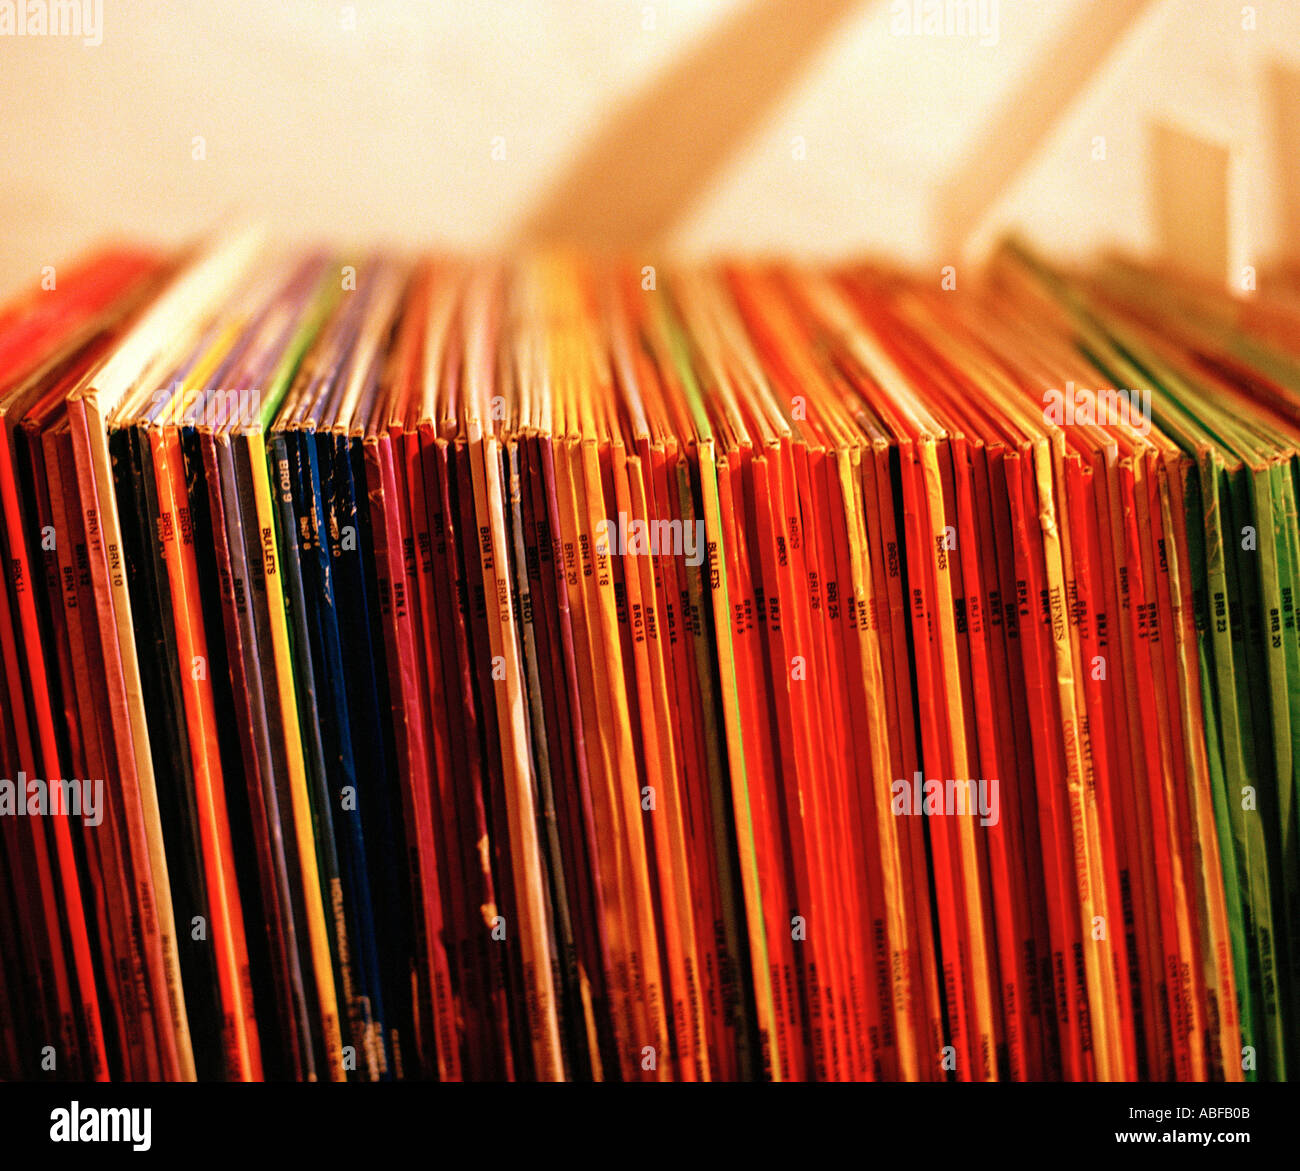 Record spine Immagini Stock